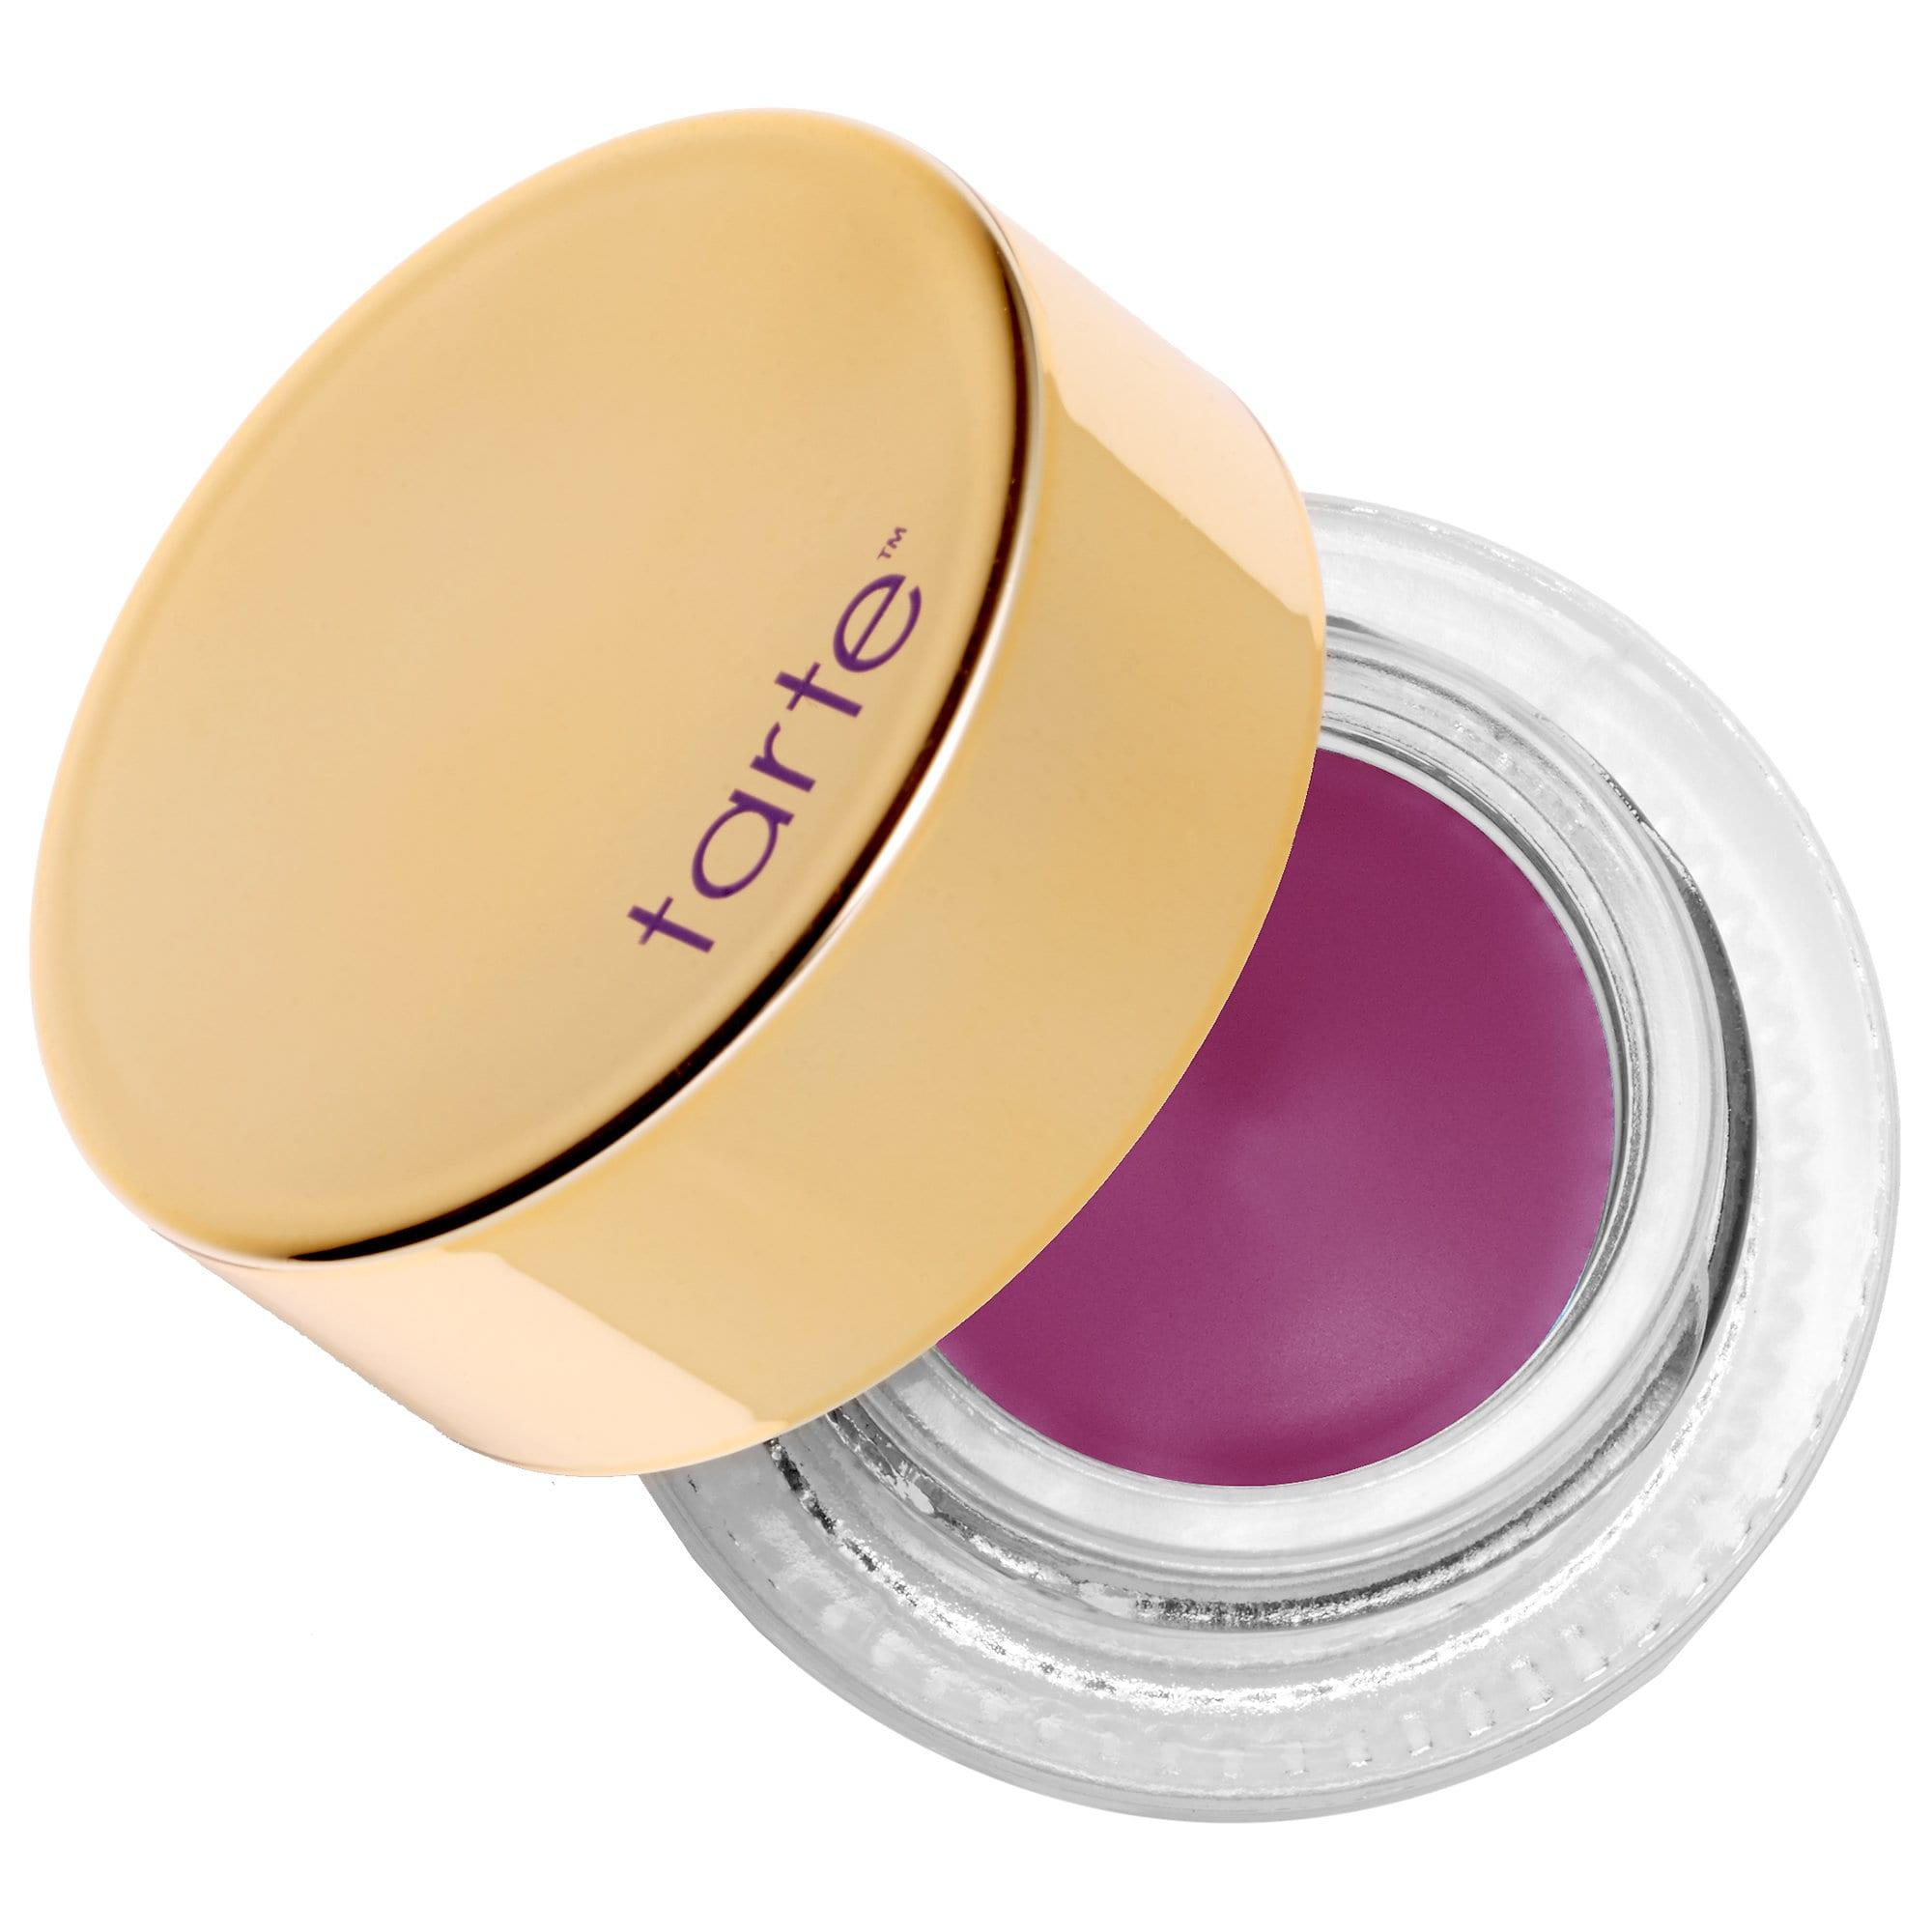 Tarte Clay Pot Waterproof Liner Prom Queen